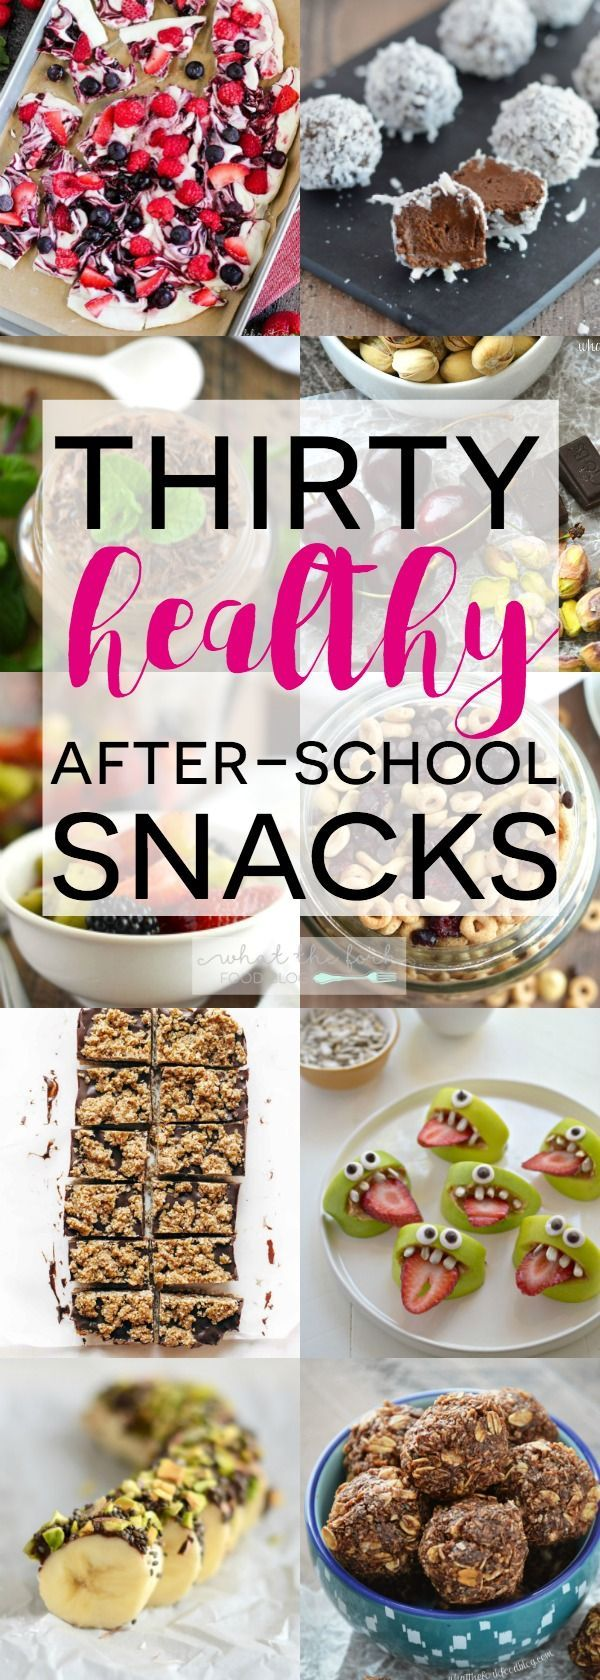 30 recipe ideas for healthy after-school snacks (for kids OR adults!) from What The Fork Food Blog - whattheforkfoodblog.com